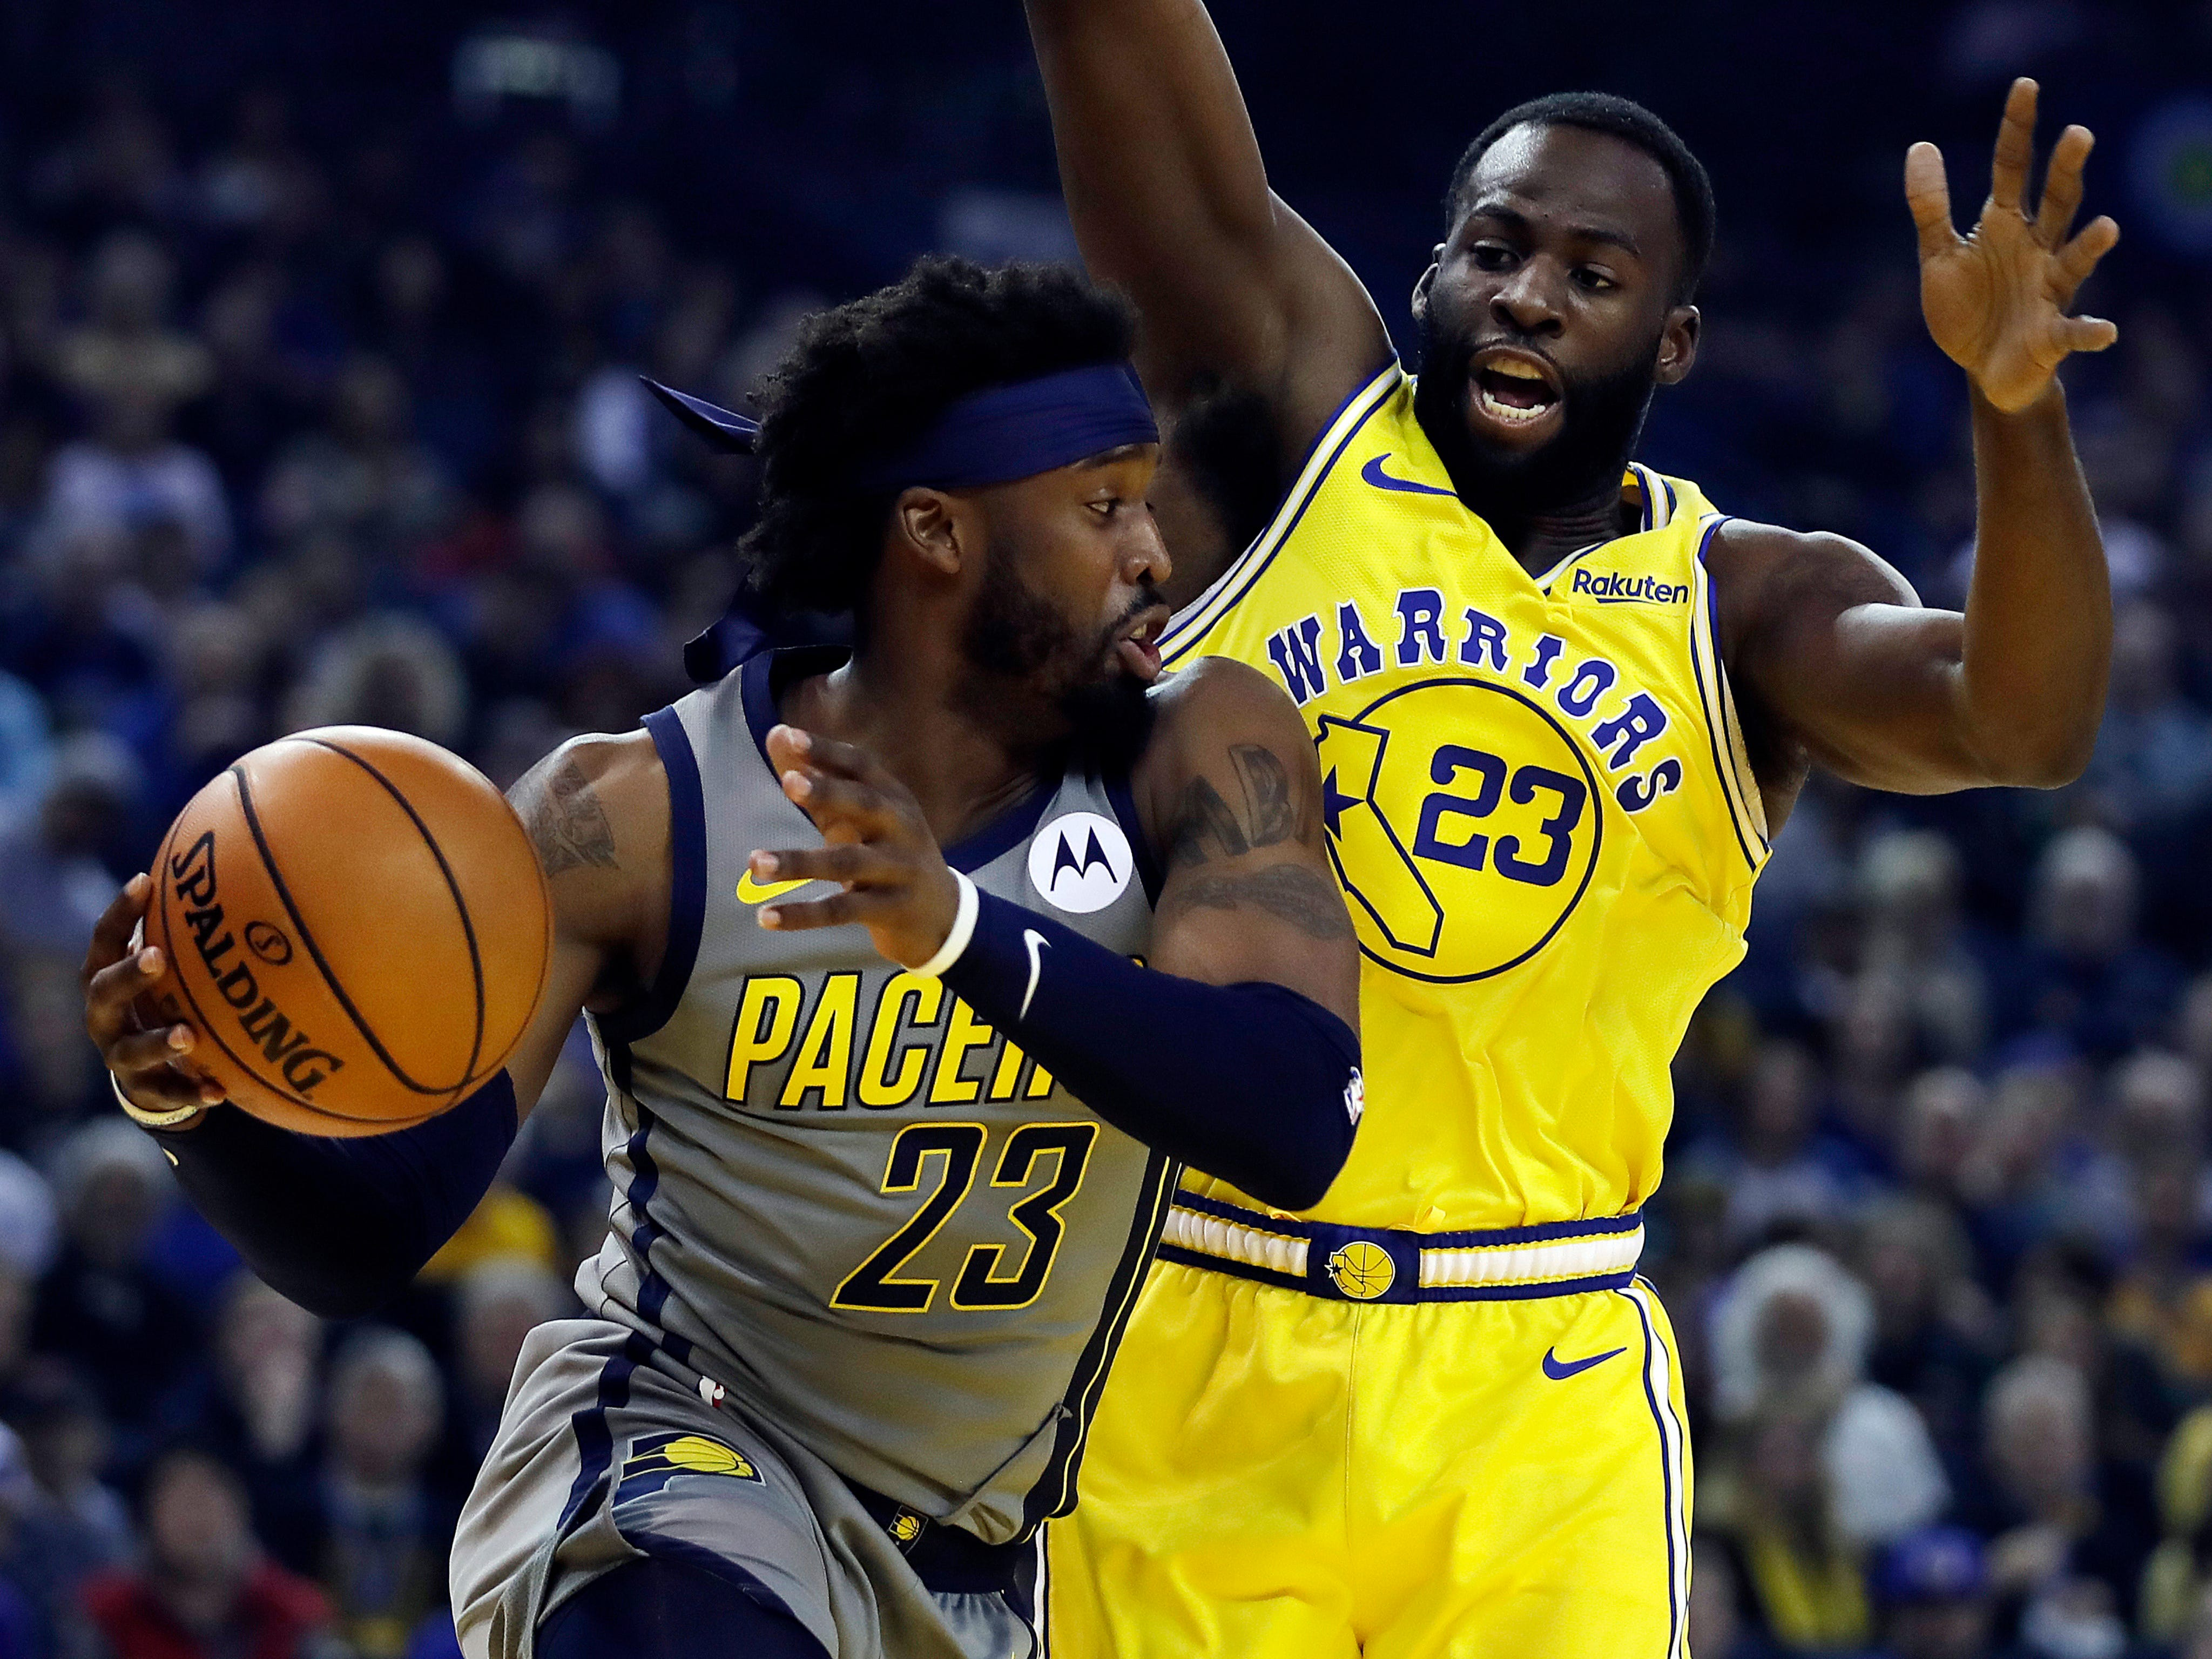 Indiana Pacers' Wesley Matthews, left, looks to pass the ball as Golden State Warriors' Draymond Green defends during the first half of an NBA basketball game Thursday, March 21, 2019, in Oakland, Calif.